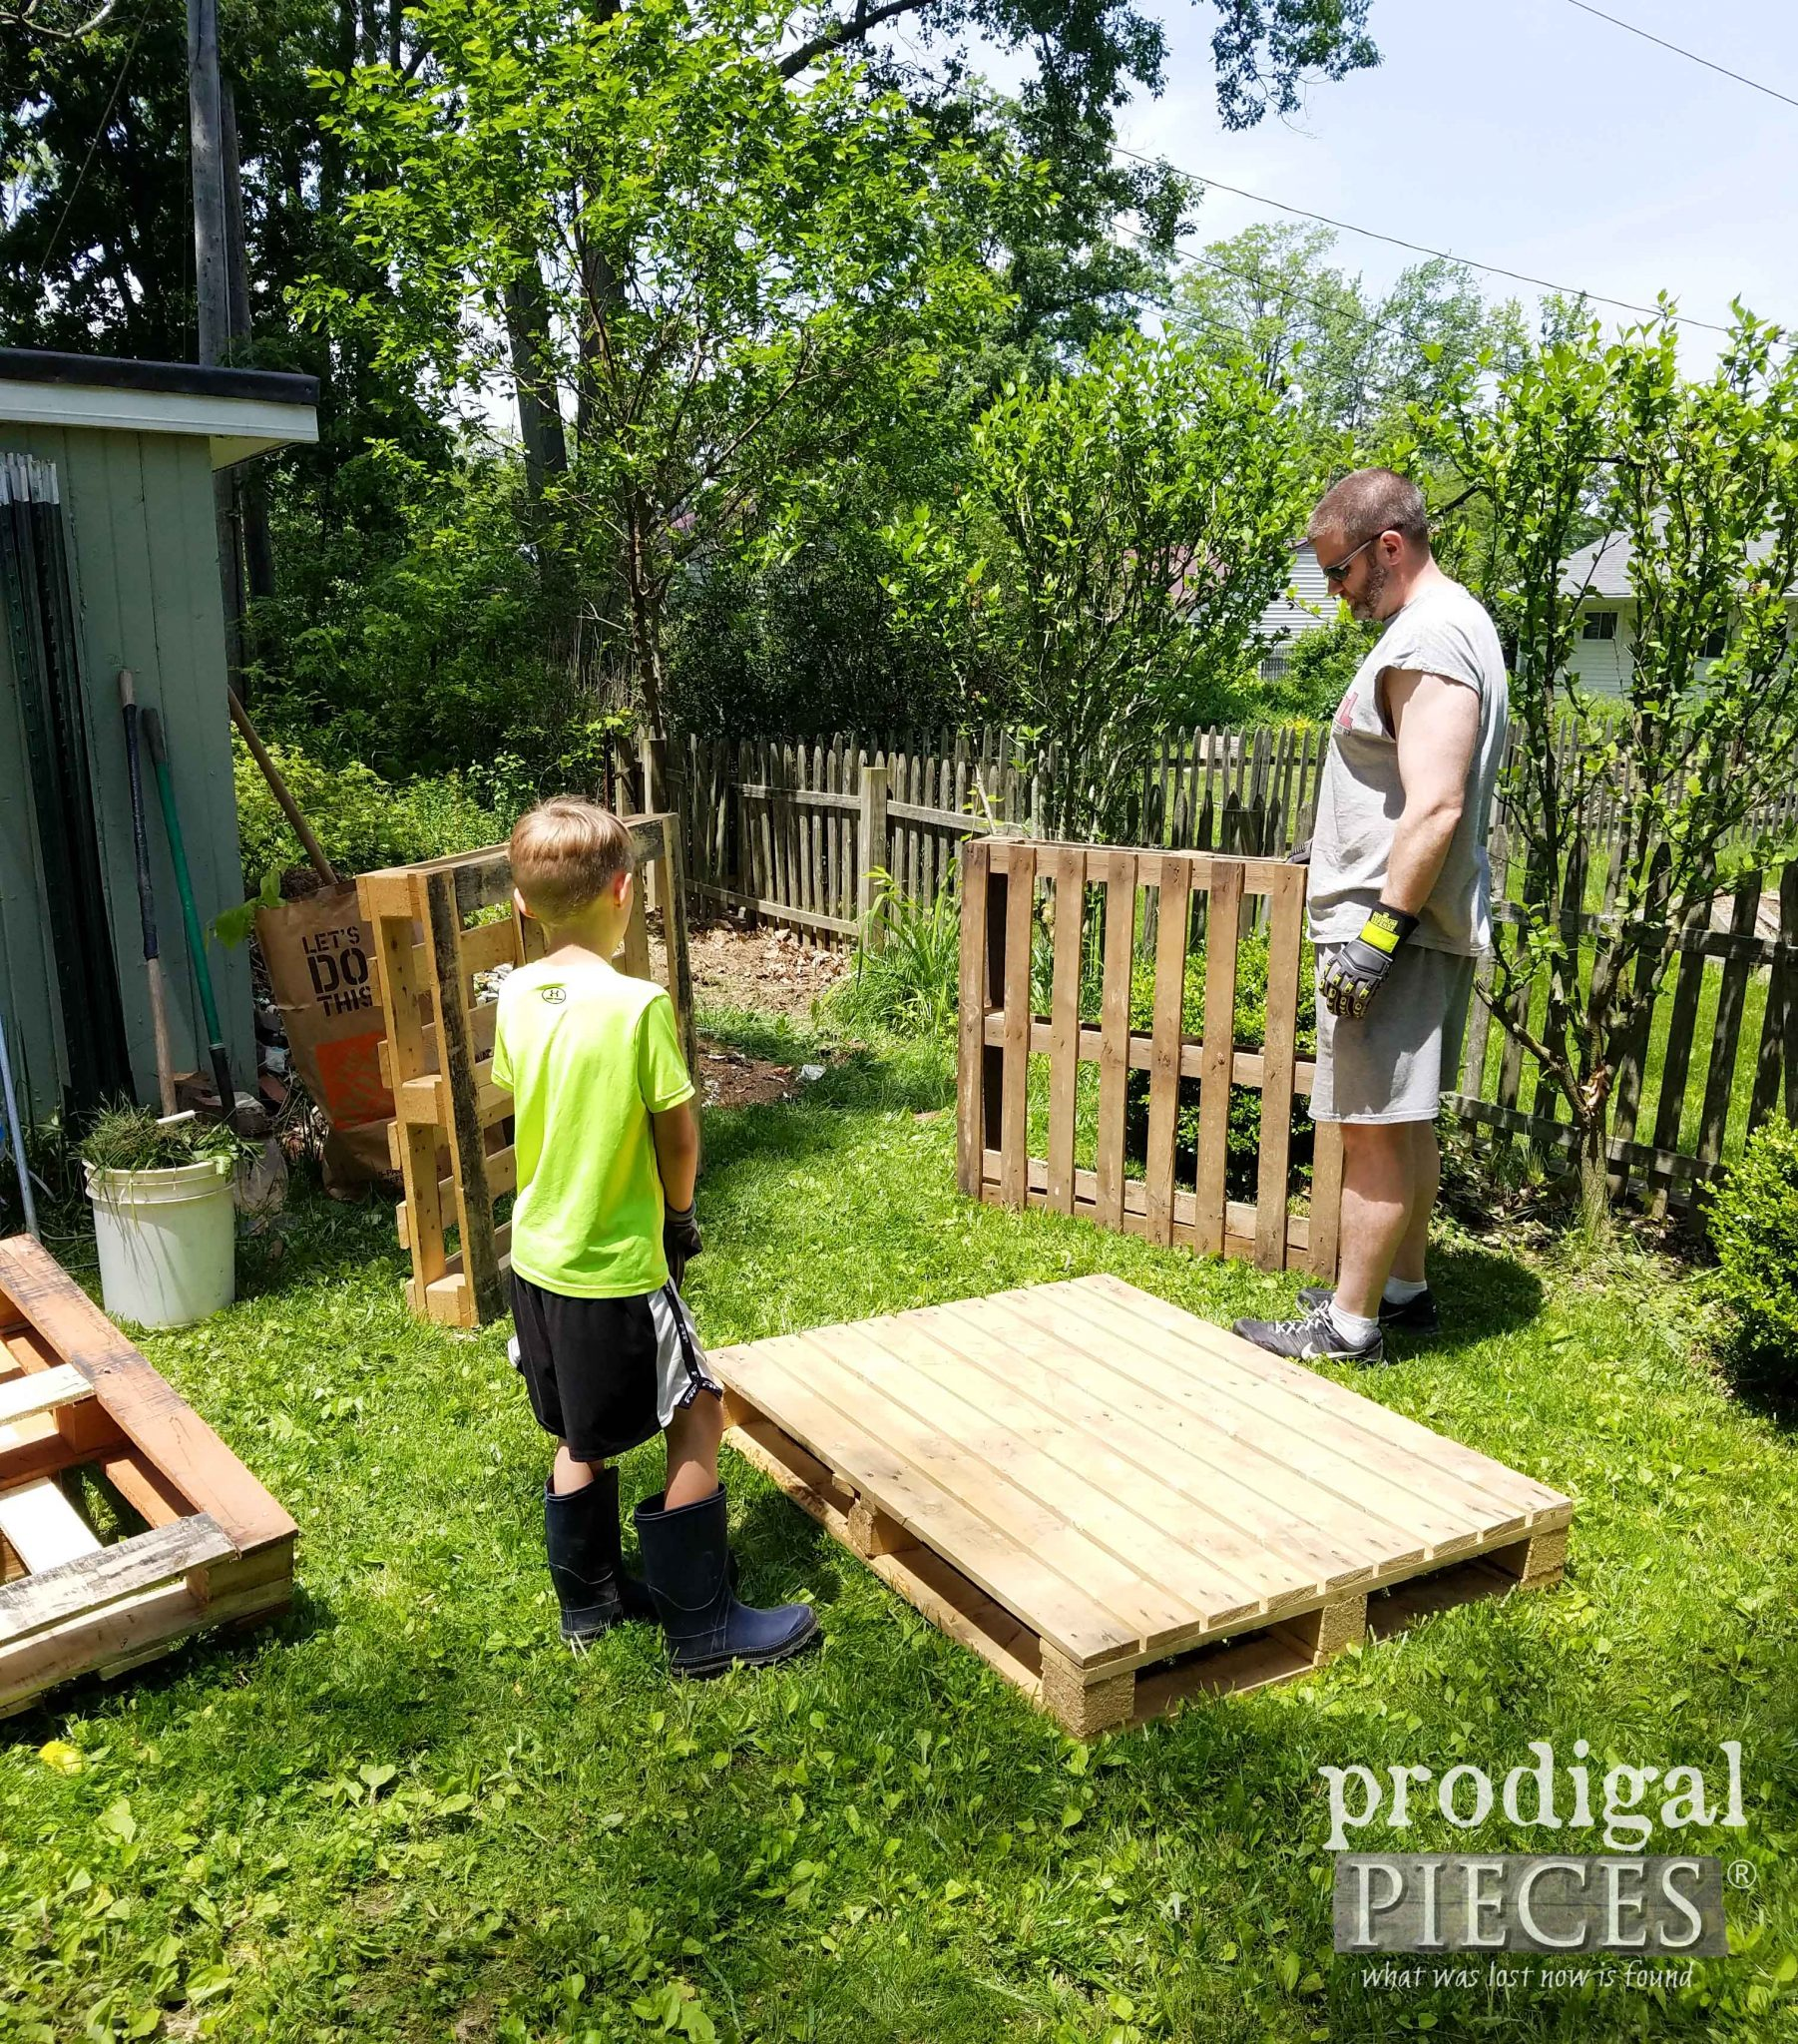 Pallets for Compost | prodigalpieces.com